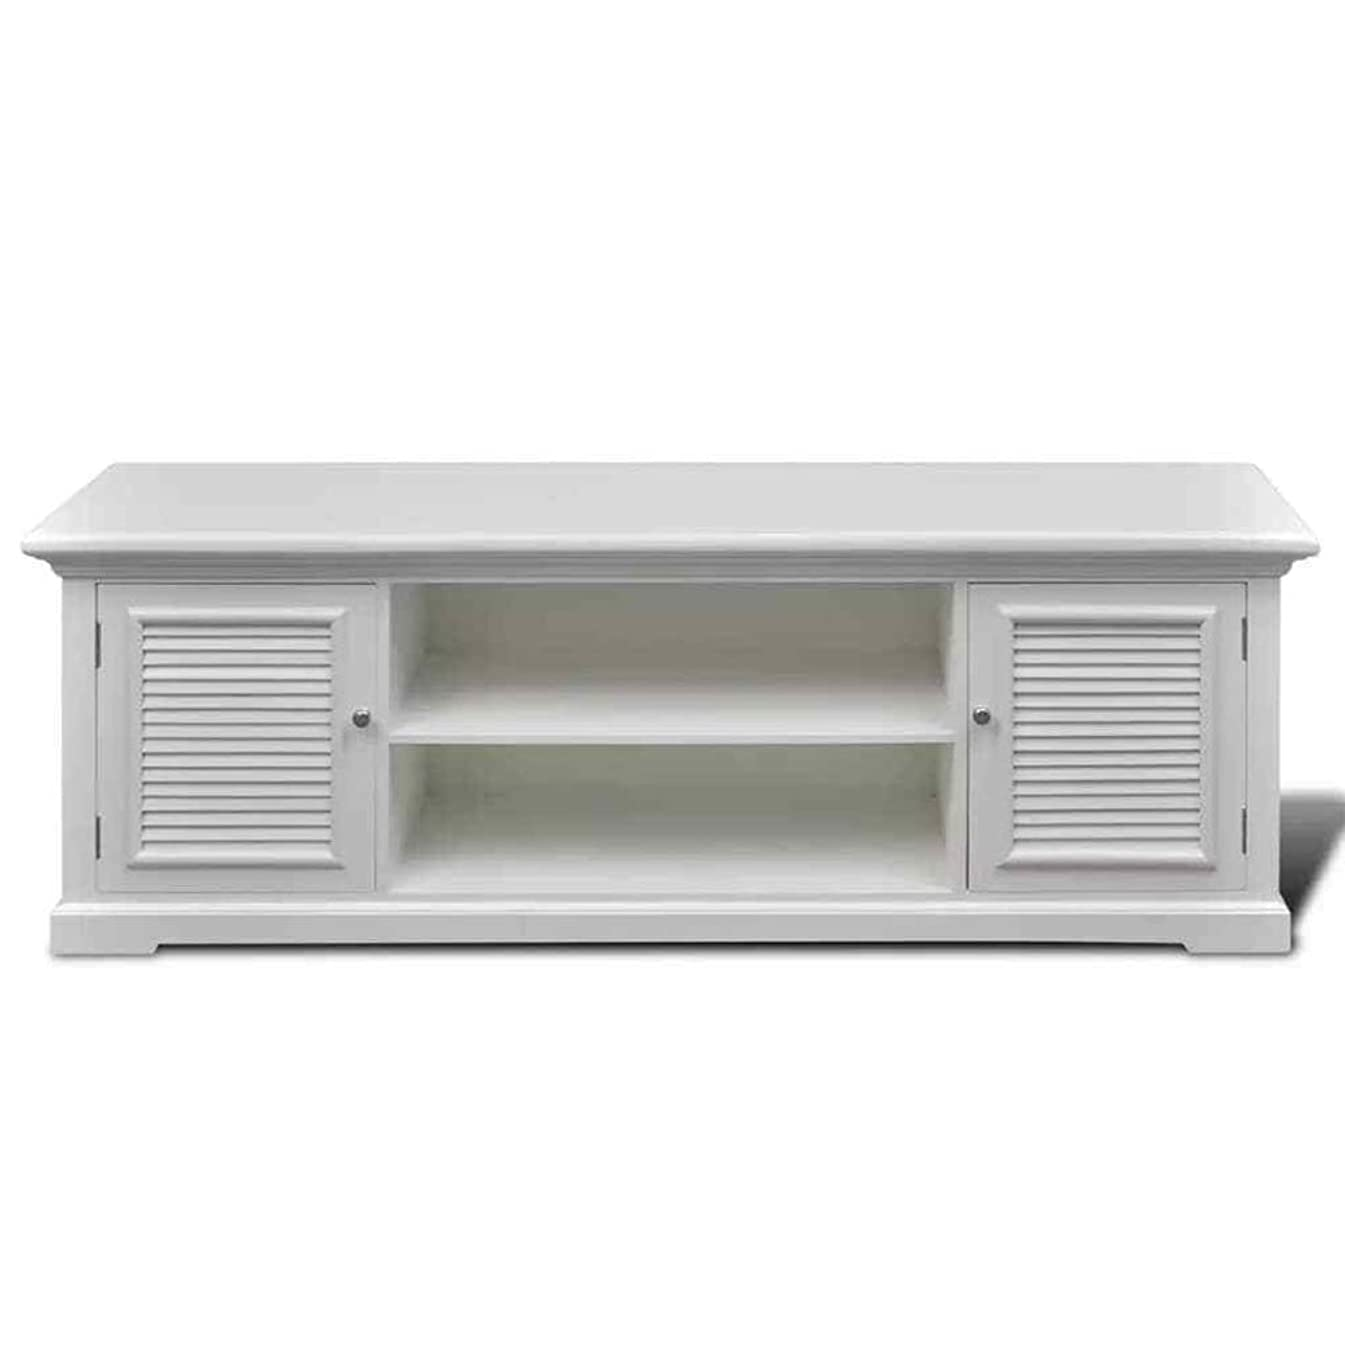 Thaweesuk Shop White TV Stand Entertainment Center Media Console Furniture Storage Wood Cabinet White MDF Pine Wood Frame Iron Handle 4' x 1' x 1' 4